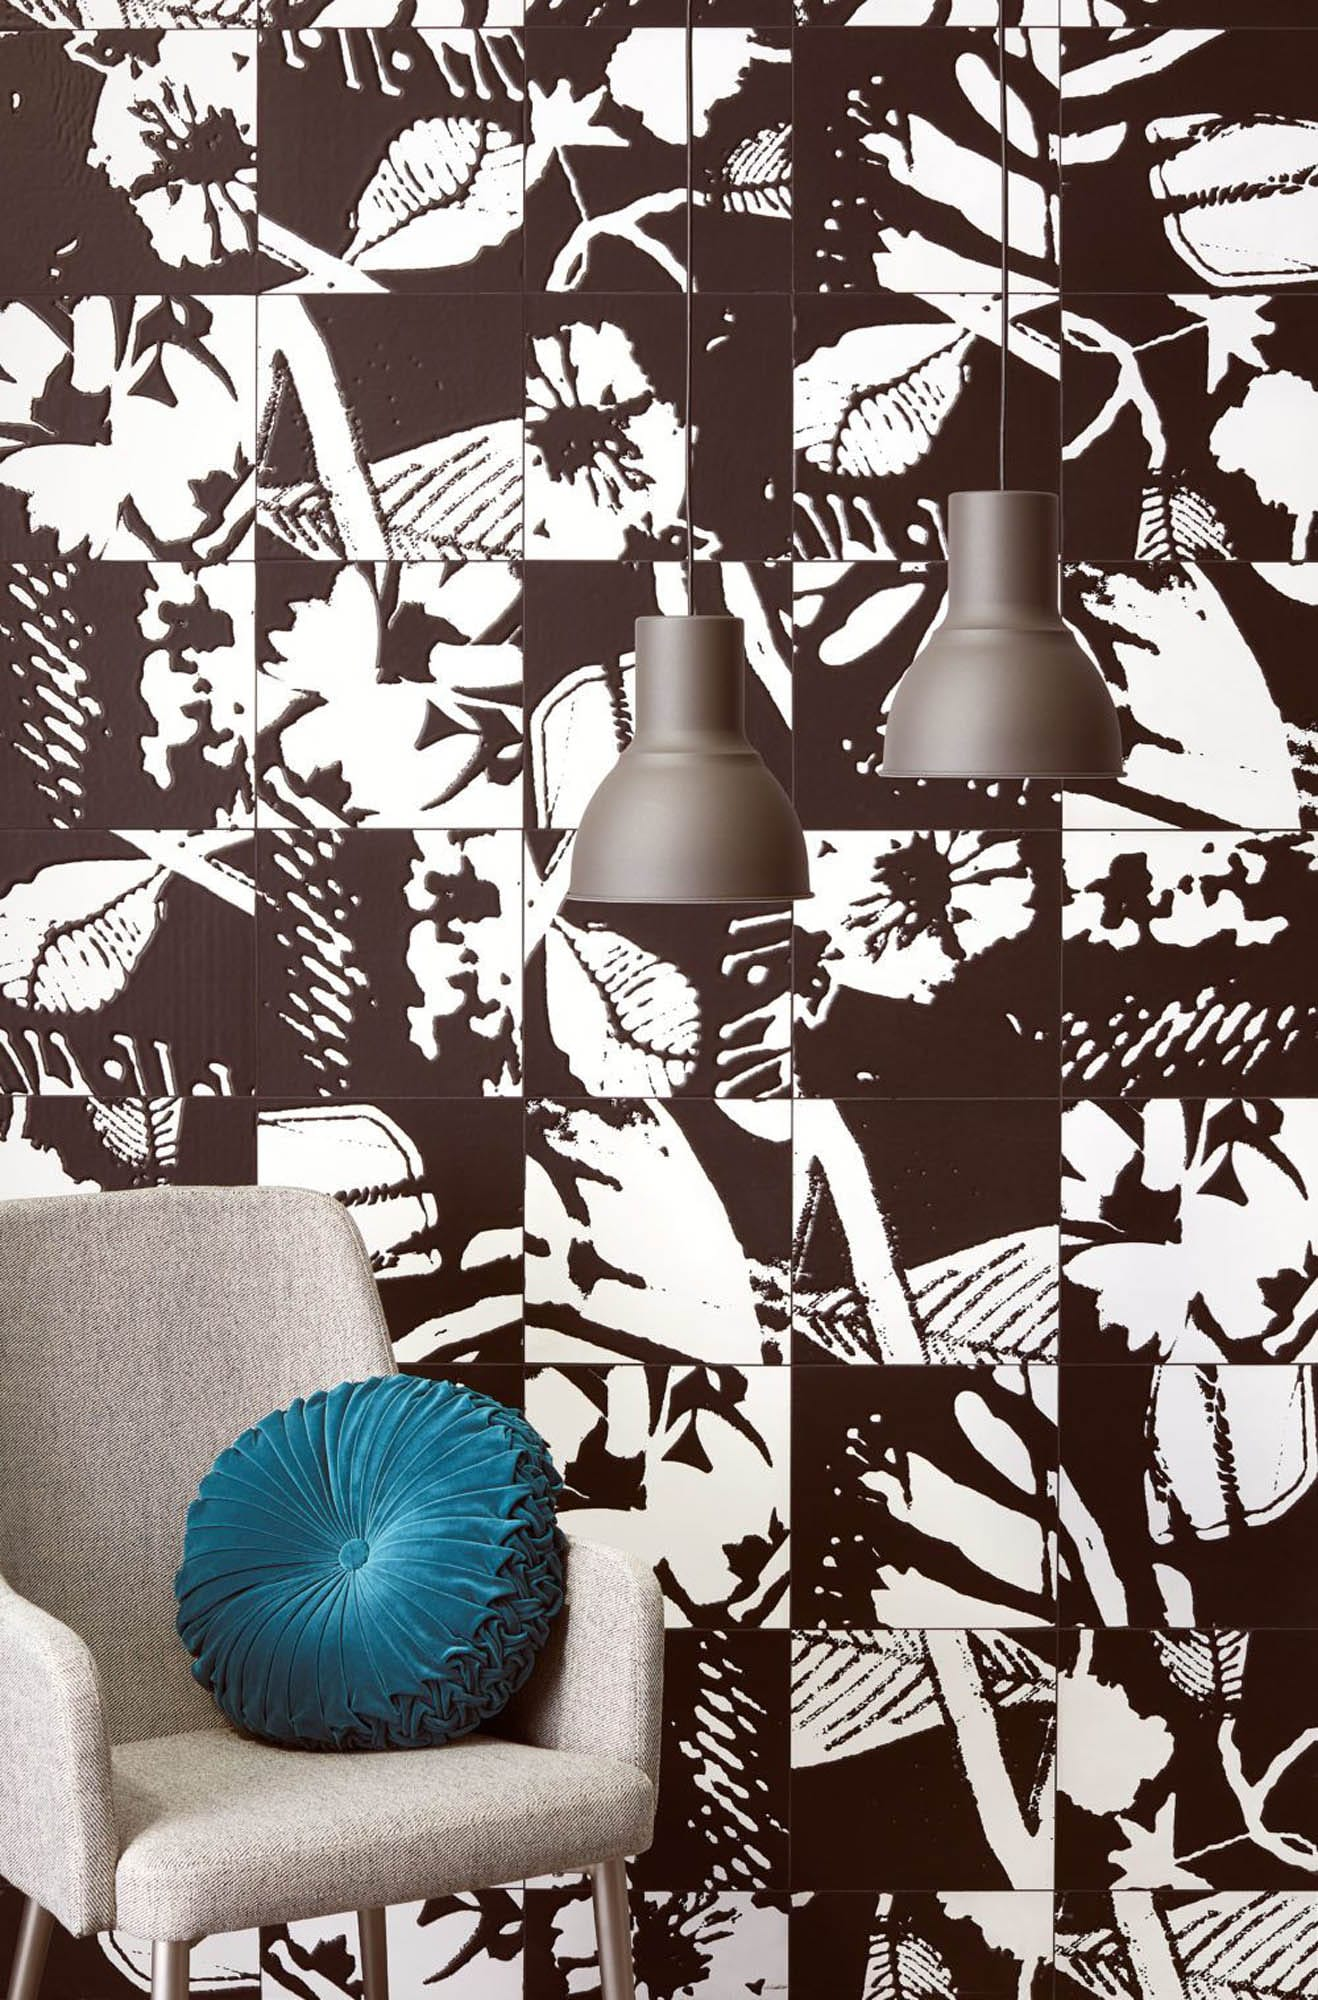 Graphic black-and-white wall tile